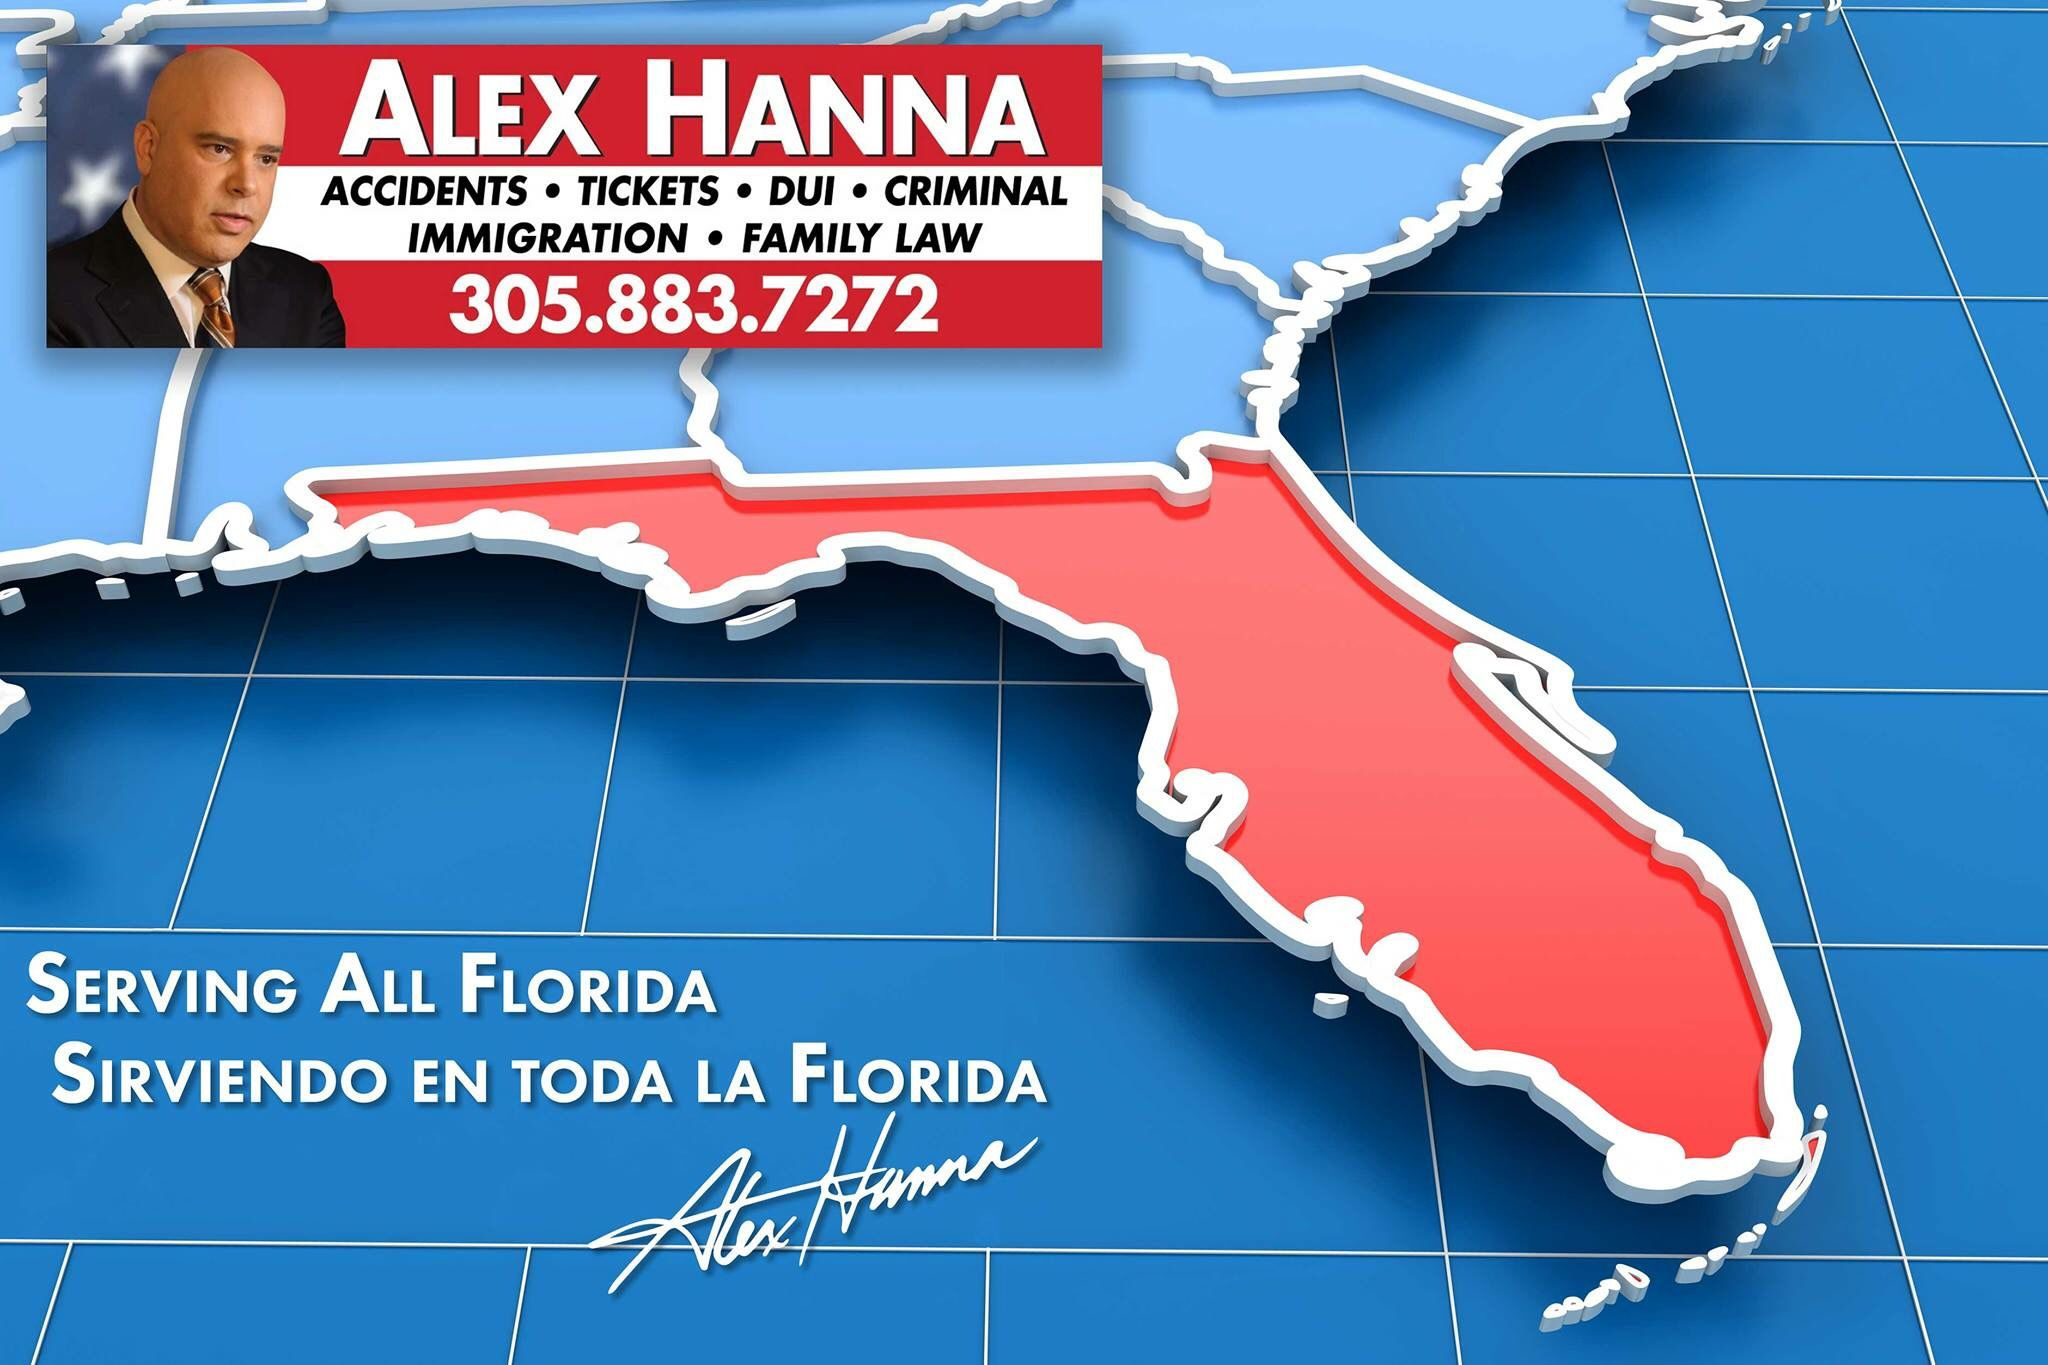 baf829cbf5d We Are Here To Serve Our Community That We Love! Alex Hanna – The Attorneys